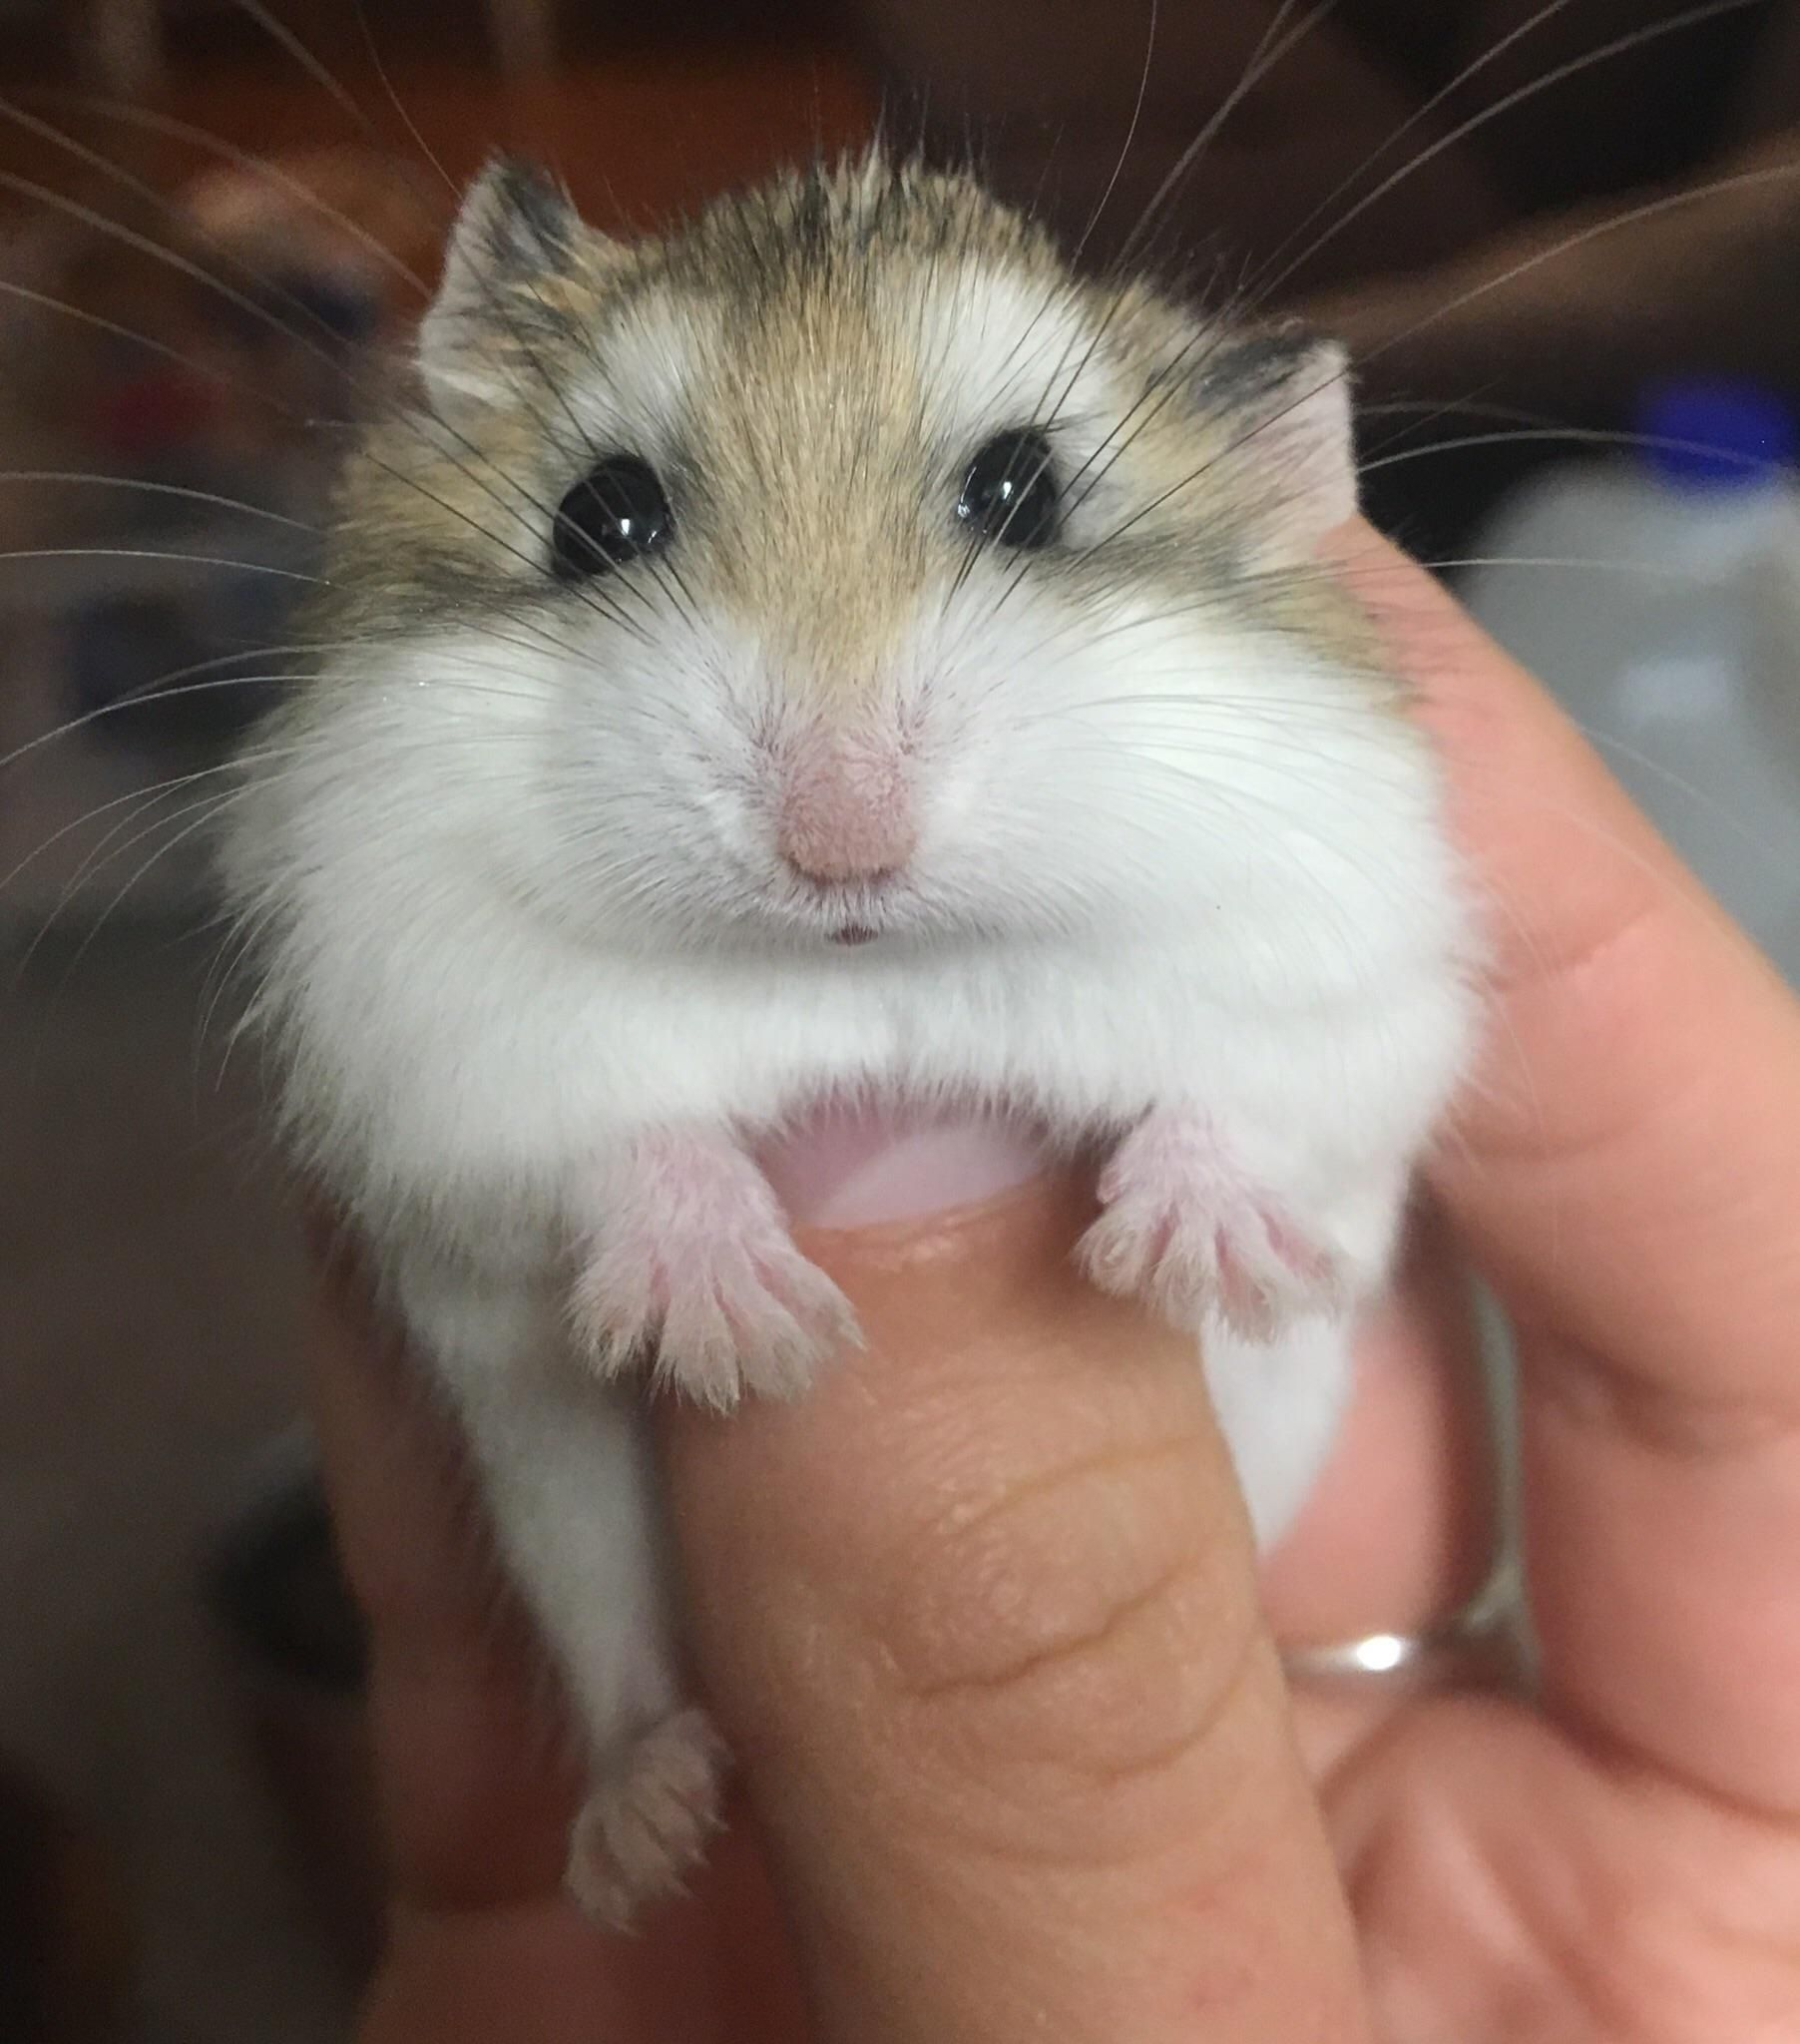 The Newest Member Of The Family Now Taking Name Suggestions Hes A Boy Aww Cutehamsters Hamster Hamstersofpinterest Bo Cute Animals Cute Hamsters Cute Baby Animals